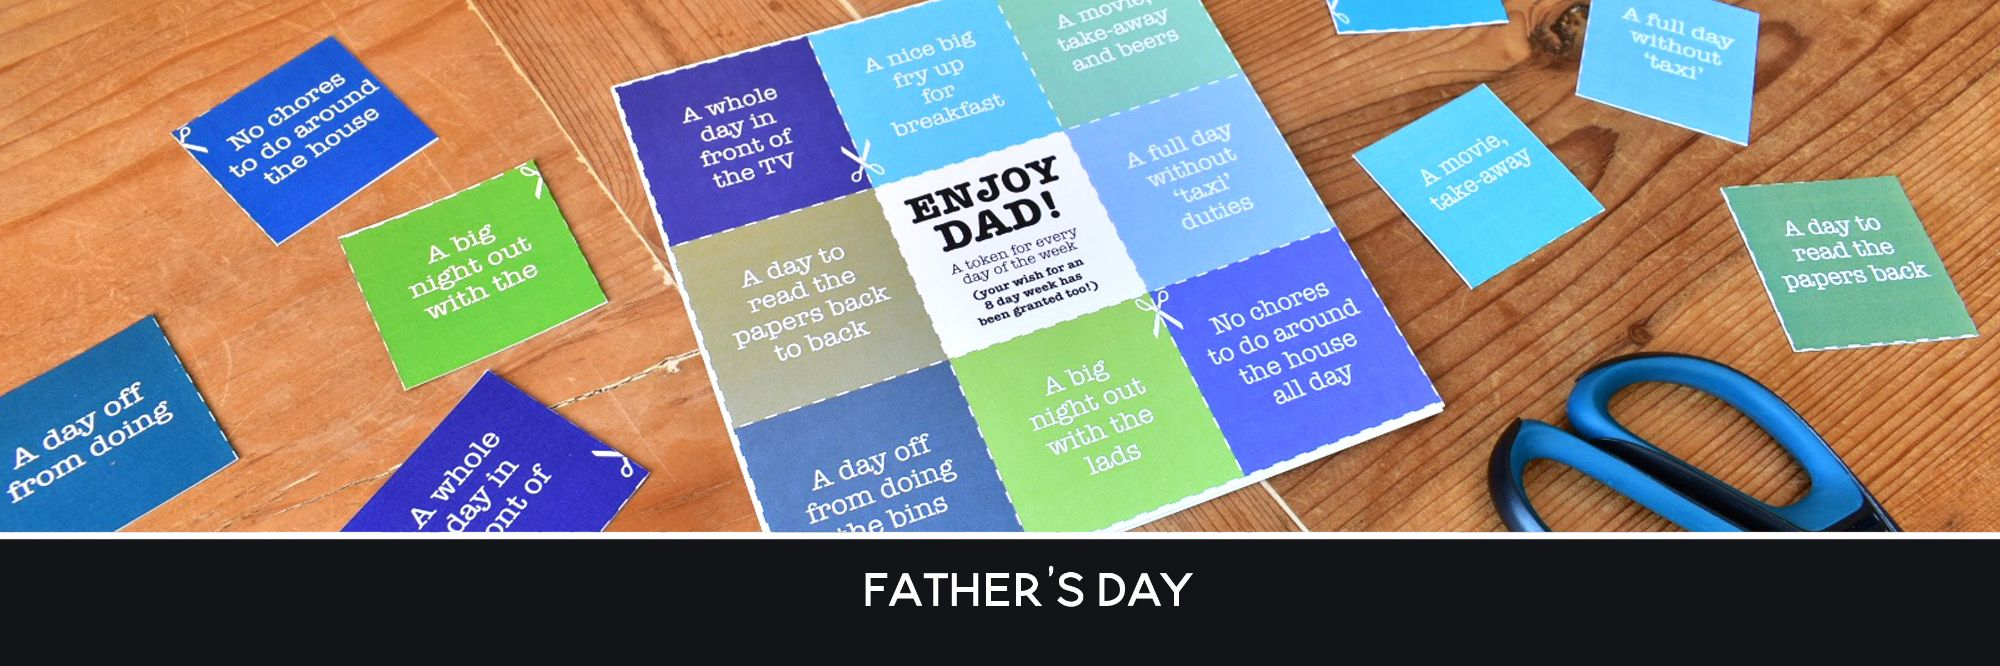 fathers day cards and gifts